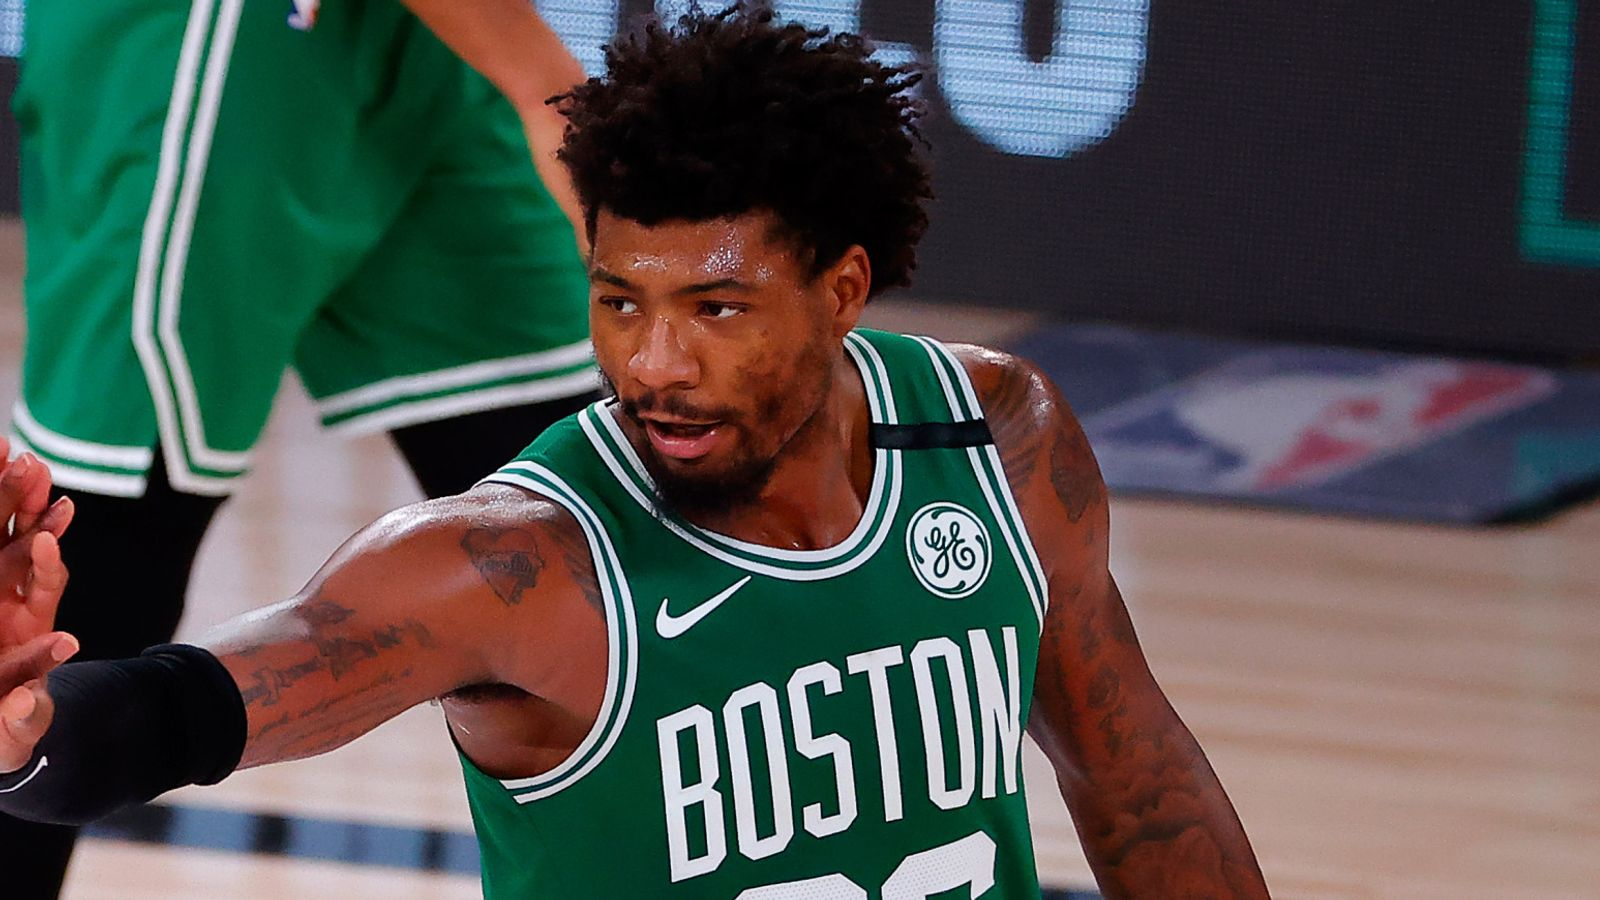 Boston Celtics' show of force in Game 3 demands response from Miami Heat, says Mike Tuck